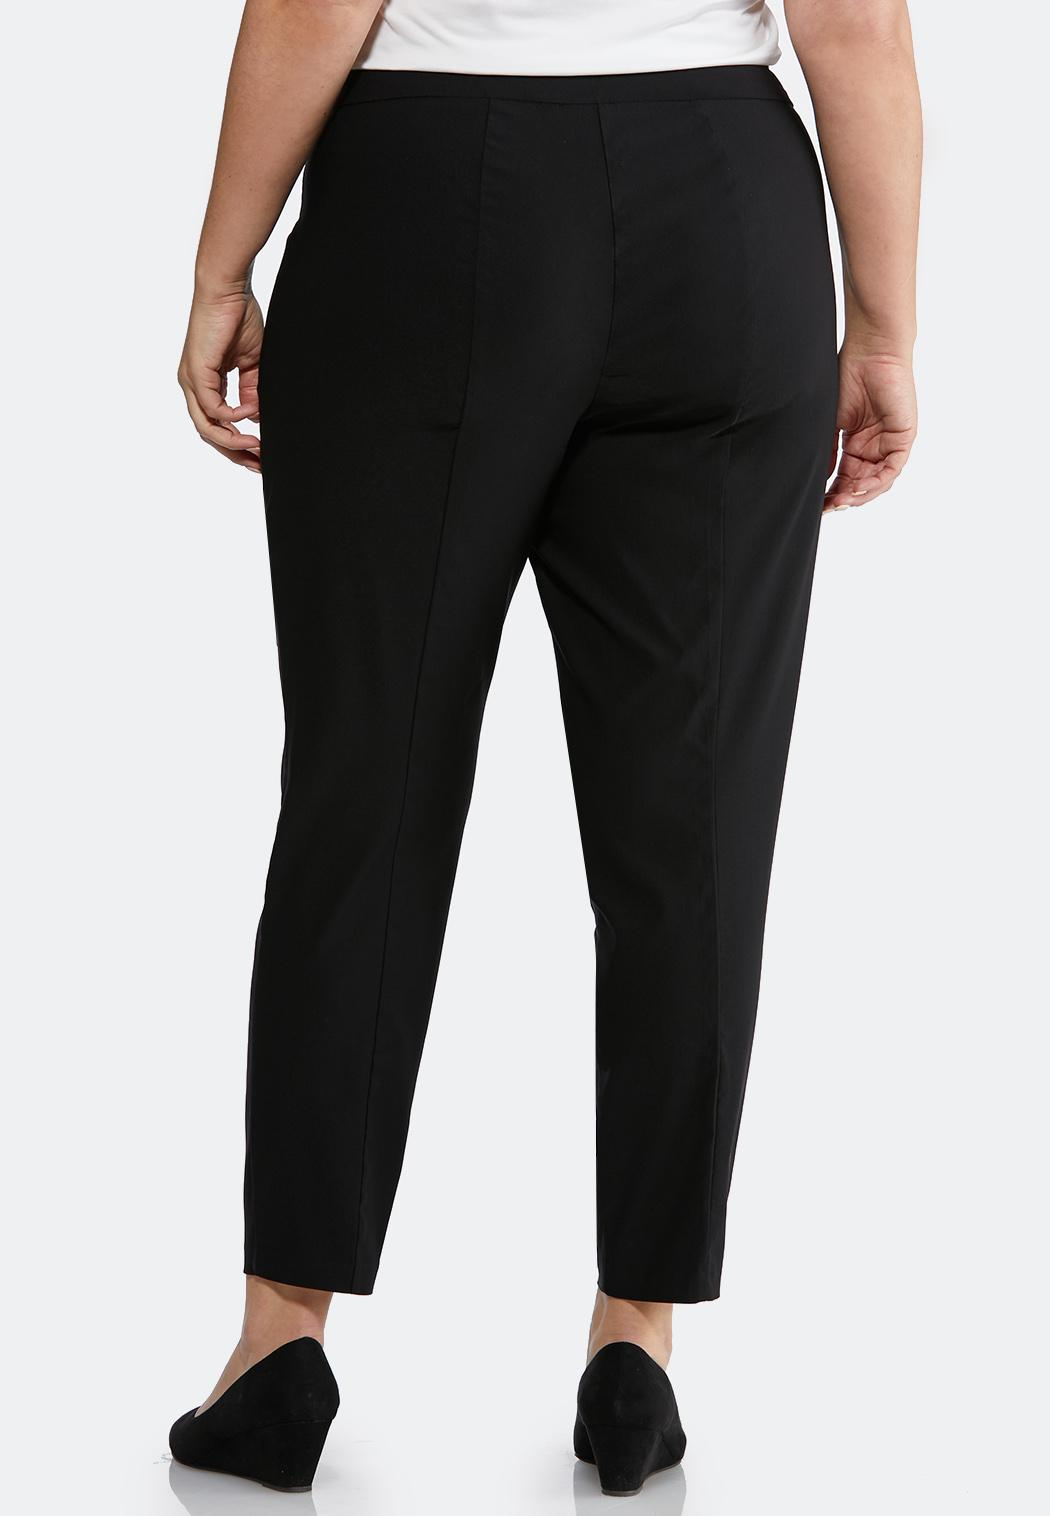 Plus Extended Pull-On Solid Slim Pants (Item #43901541)